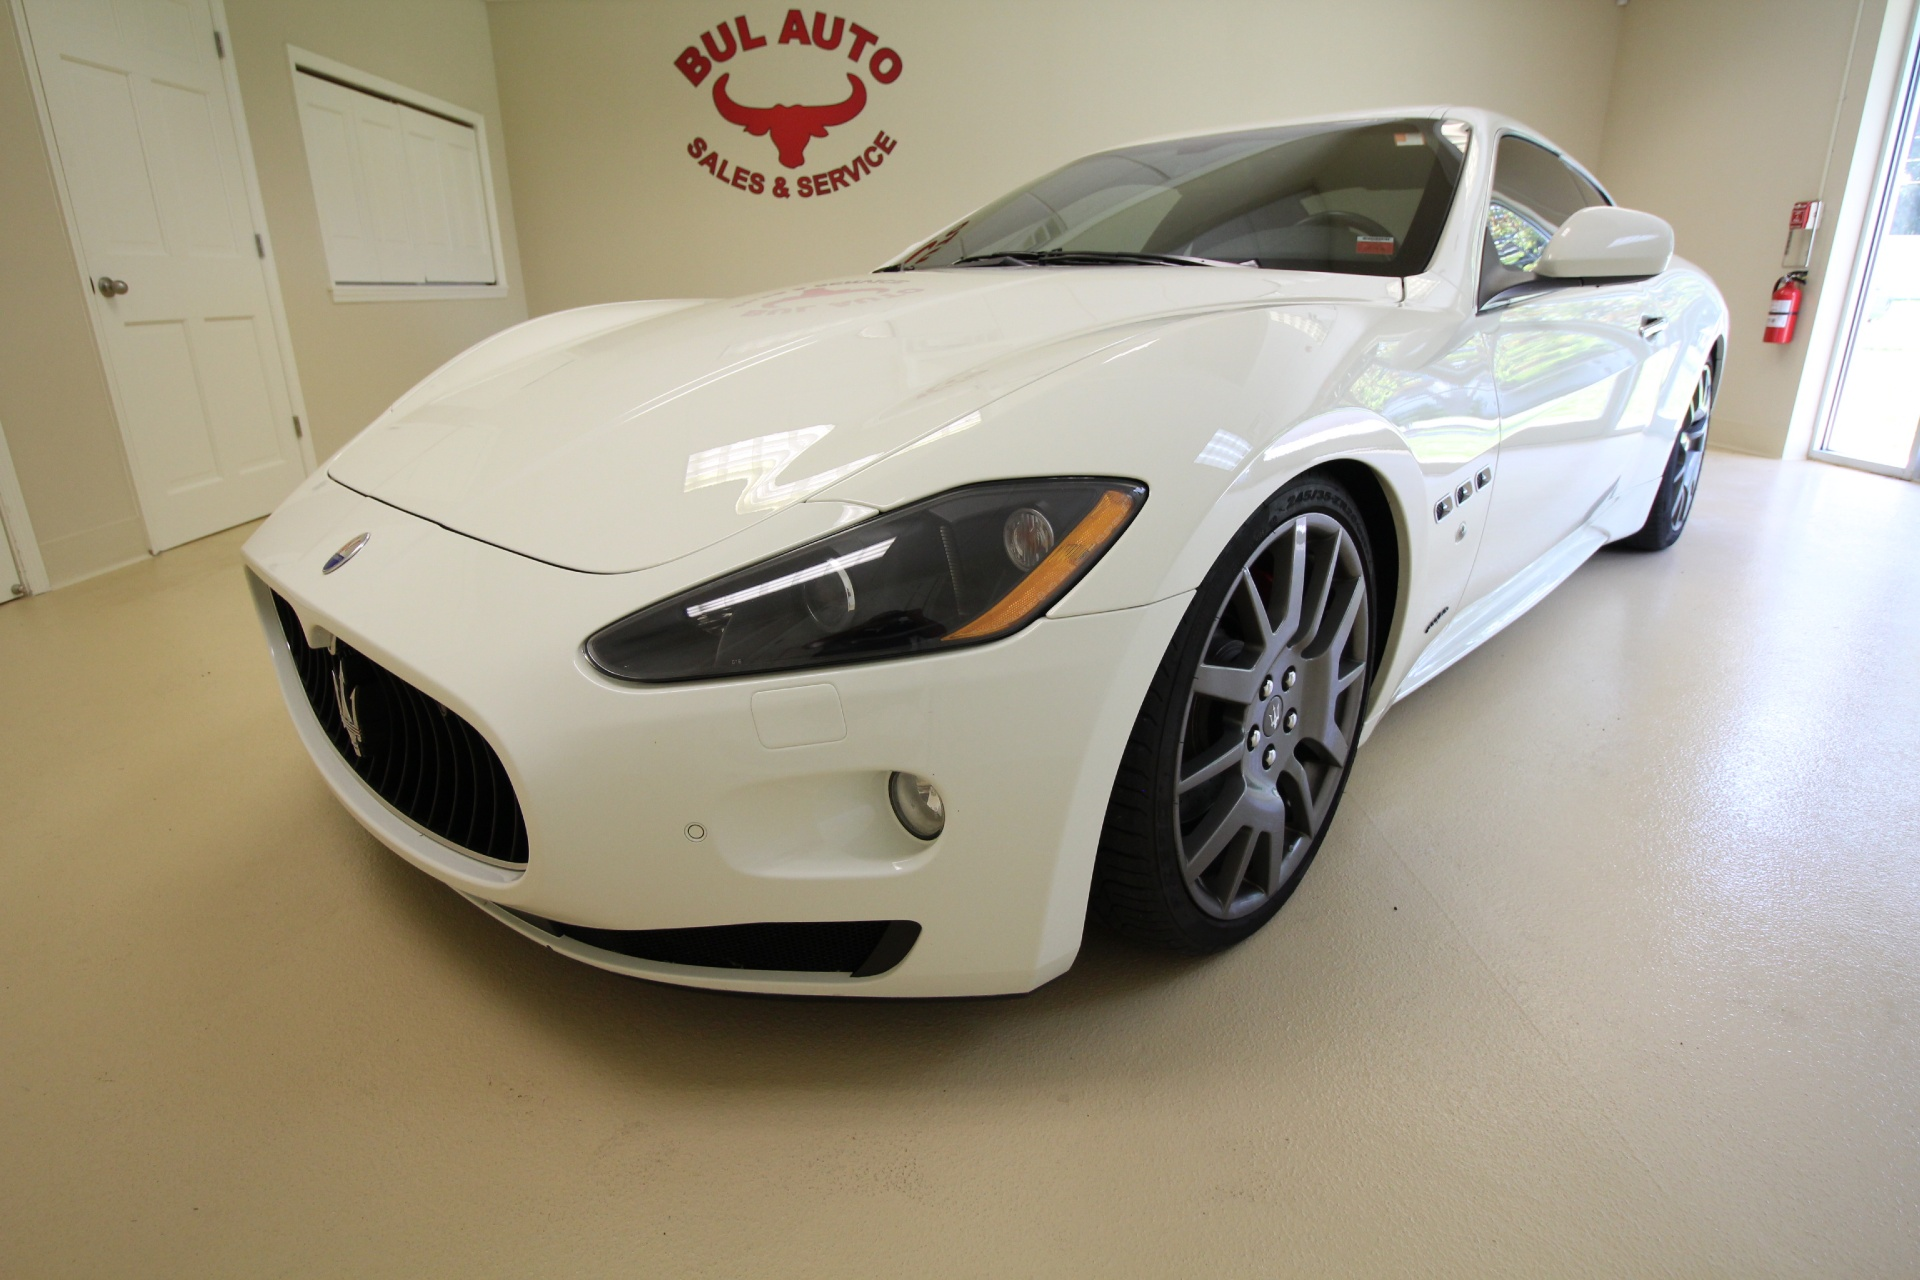 2009 maserati granturismo s gts very rare gts cc f430. Black Bedroom Furniture Sets. Home Design Ideas